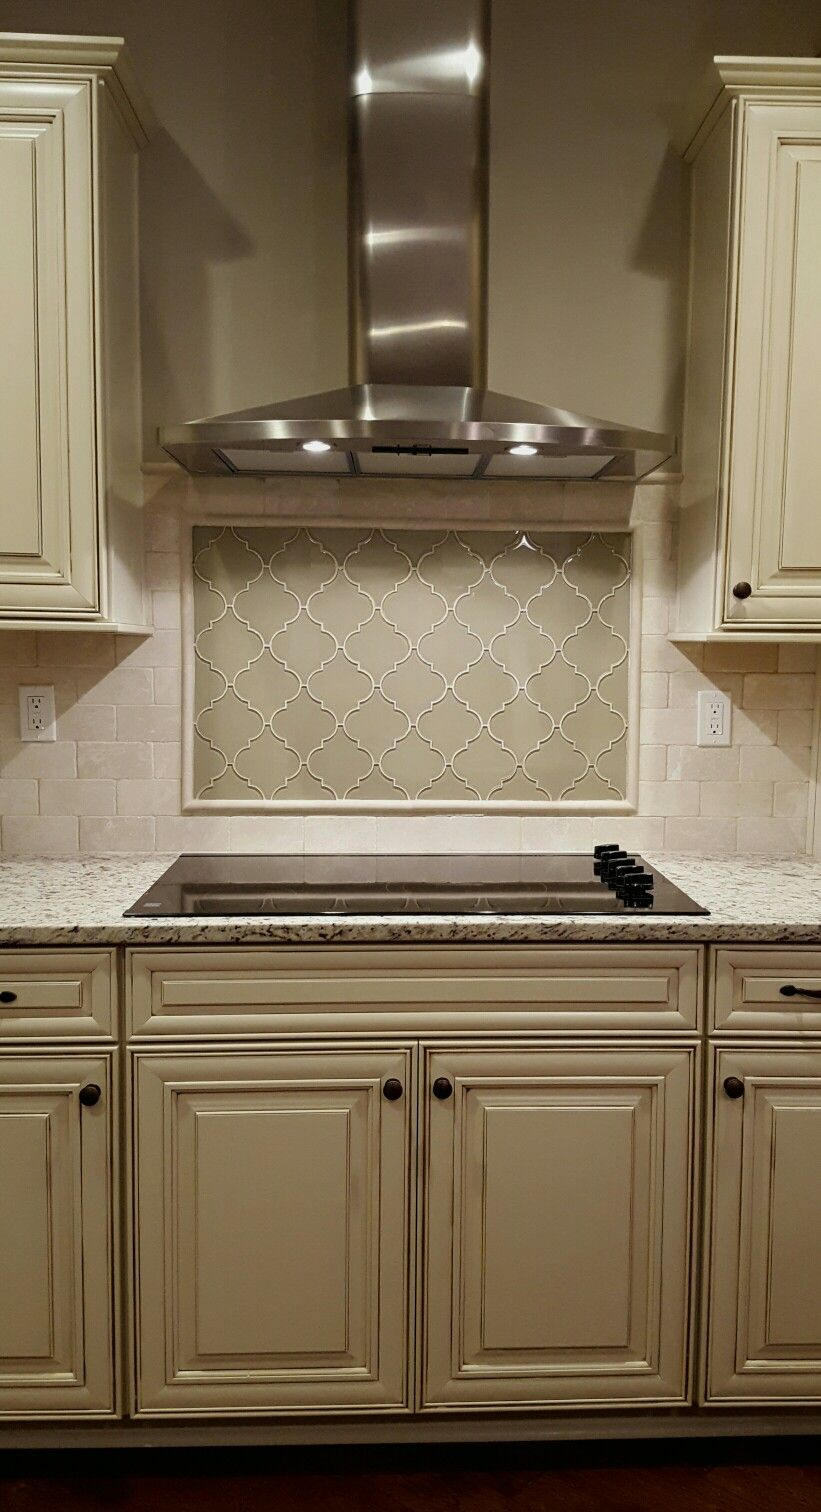 Picture Frame Arebesque Tile Backsplash Under Chimney Oven